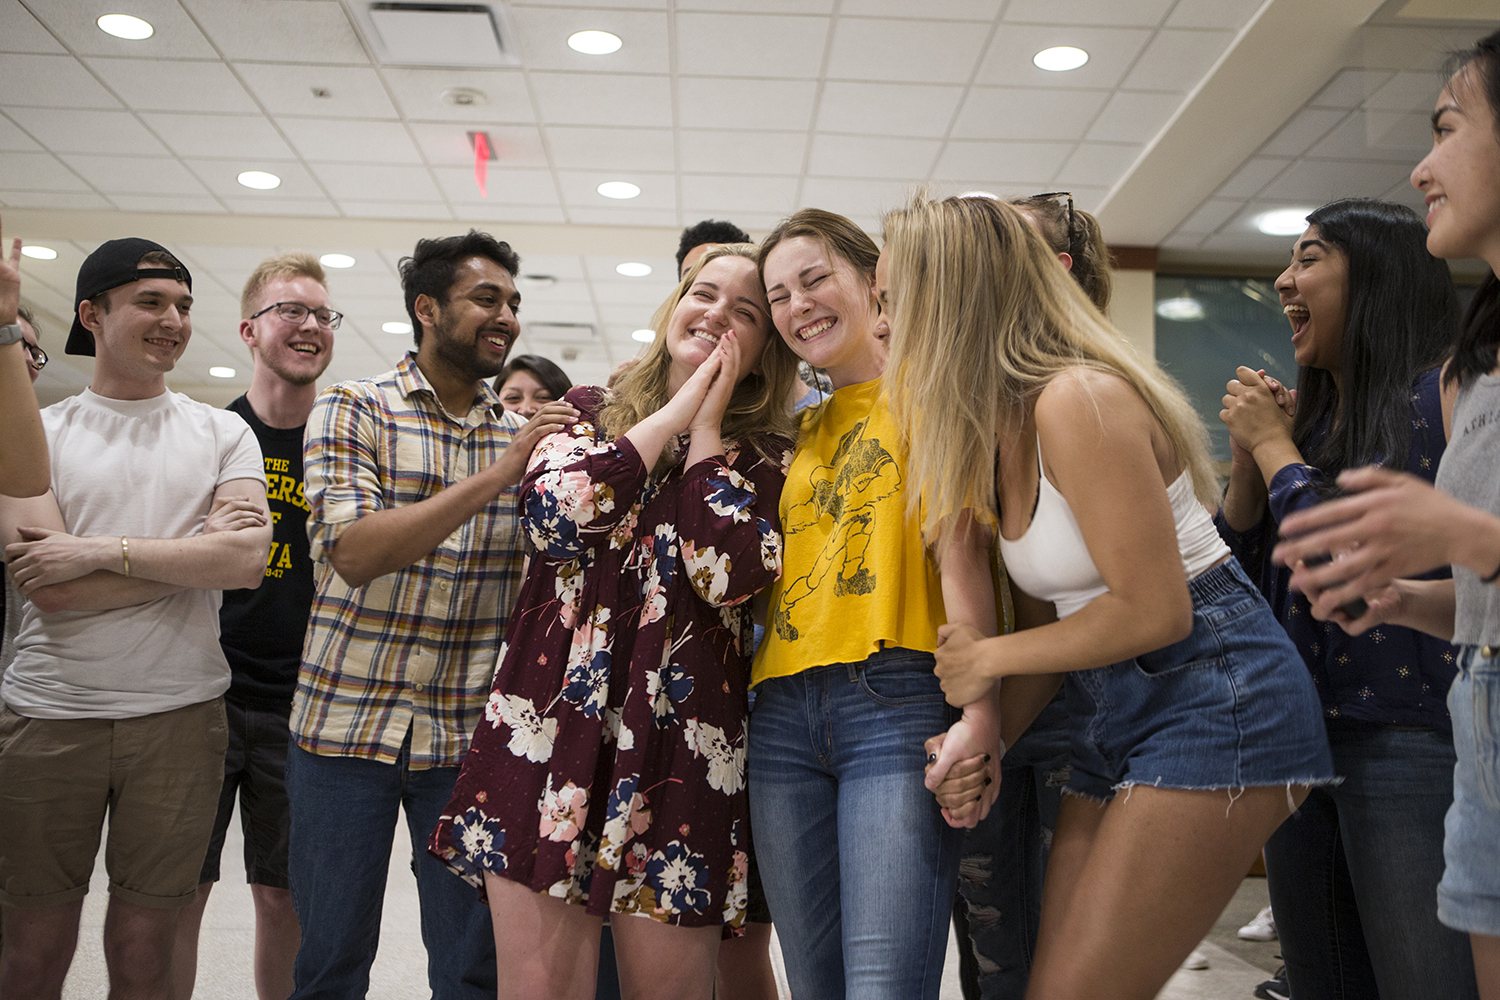 UISG president-elect, Noel Mills, and vice president-elect, Sarah Henry, celebrate winning the 2019 UISG Executive ballot at the IMU on Monday, April 8, 2019. Ignite Iowa received the majority of votes at 1,568 or 53.28%. (Alyson Kuennen/The Daily Iowan)